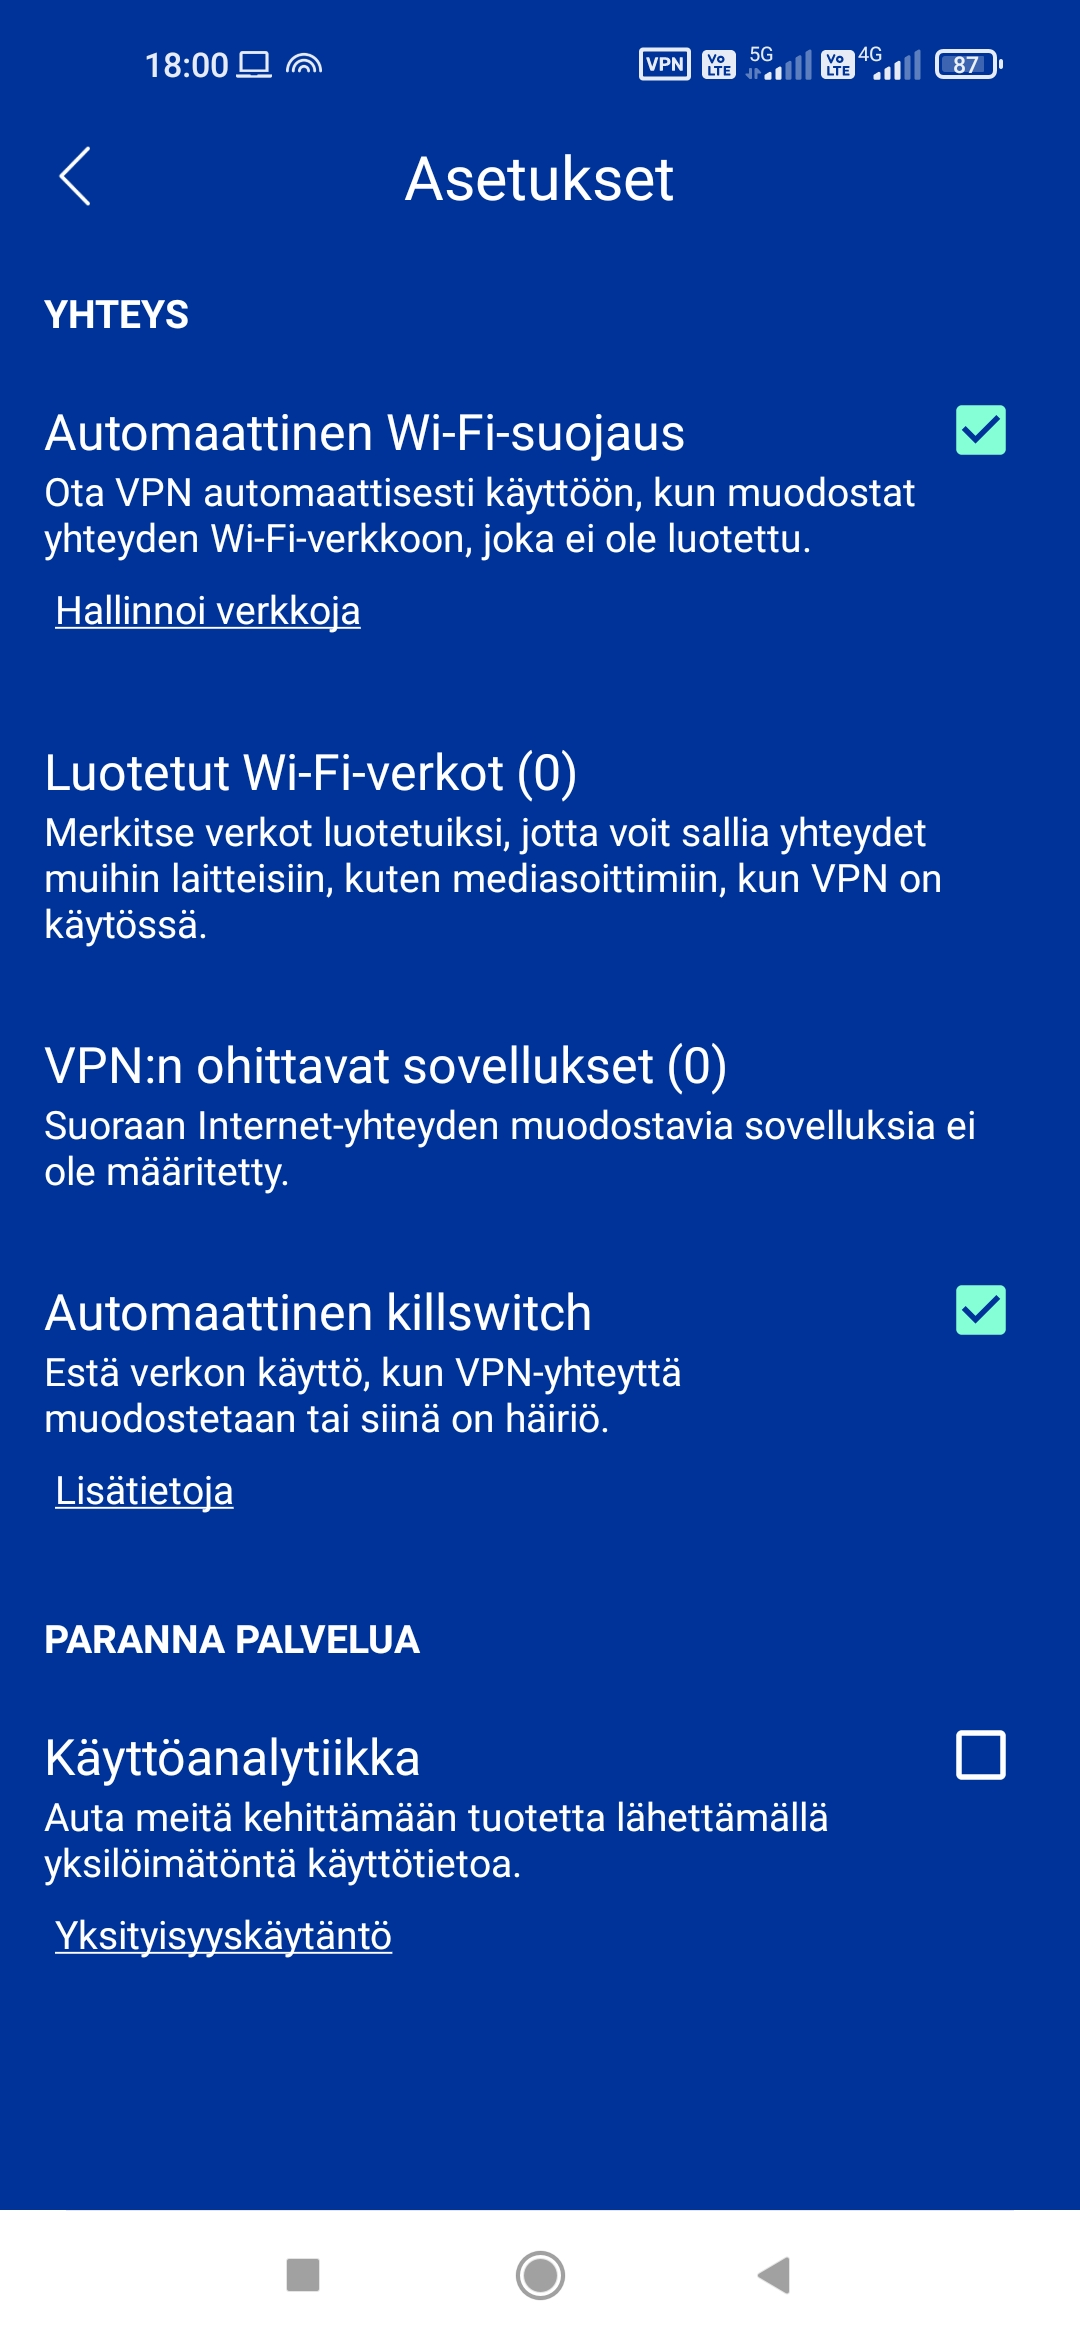 Screenshot_2021-07-28-18-00-42-587_com.fsecure.freedome.vpn.security.privacy.android.jpg